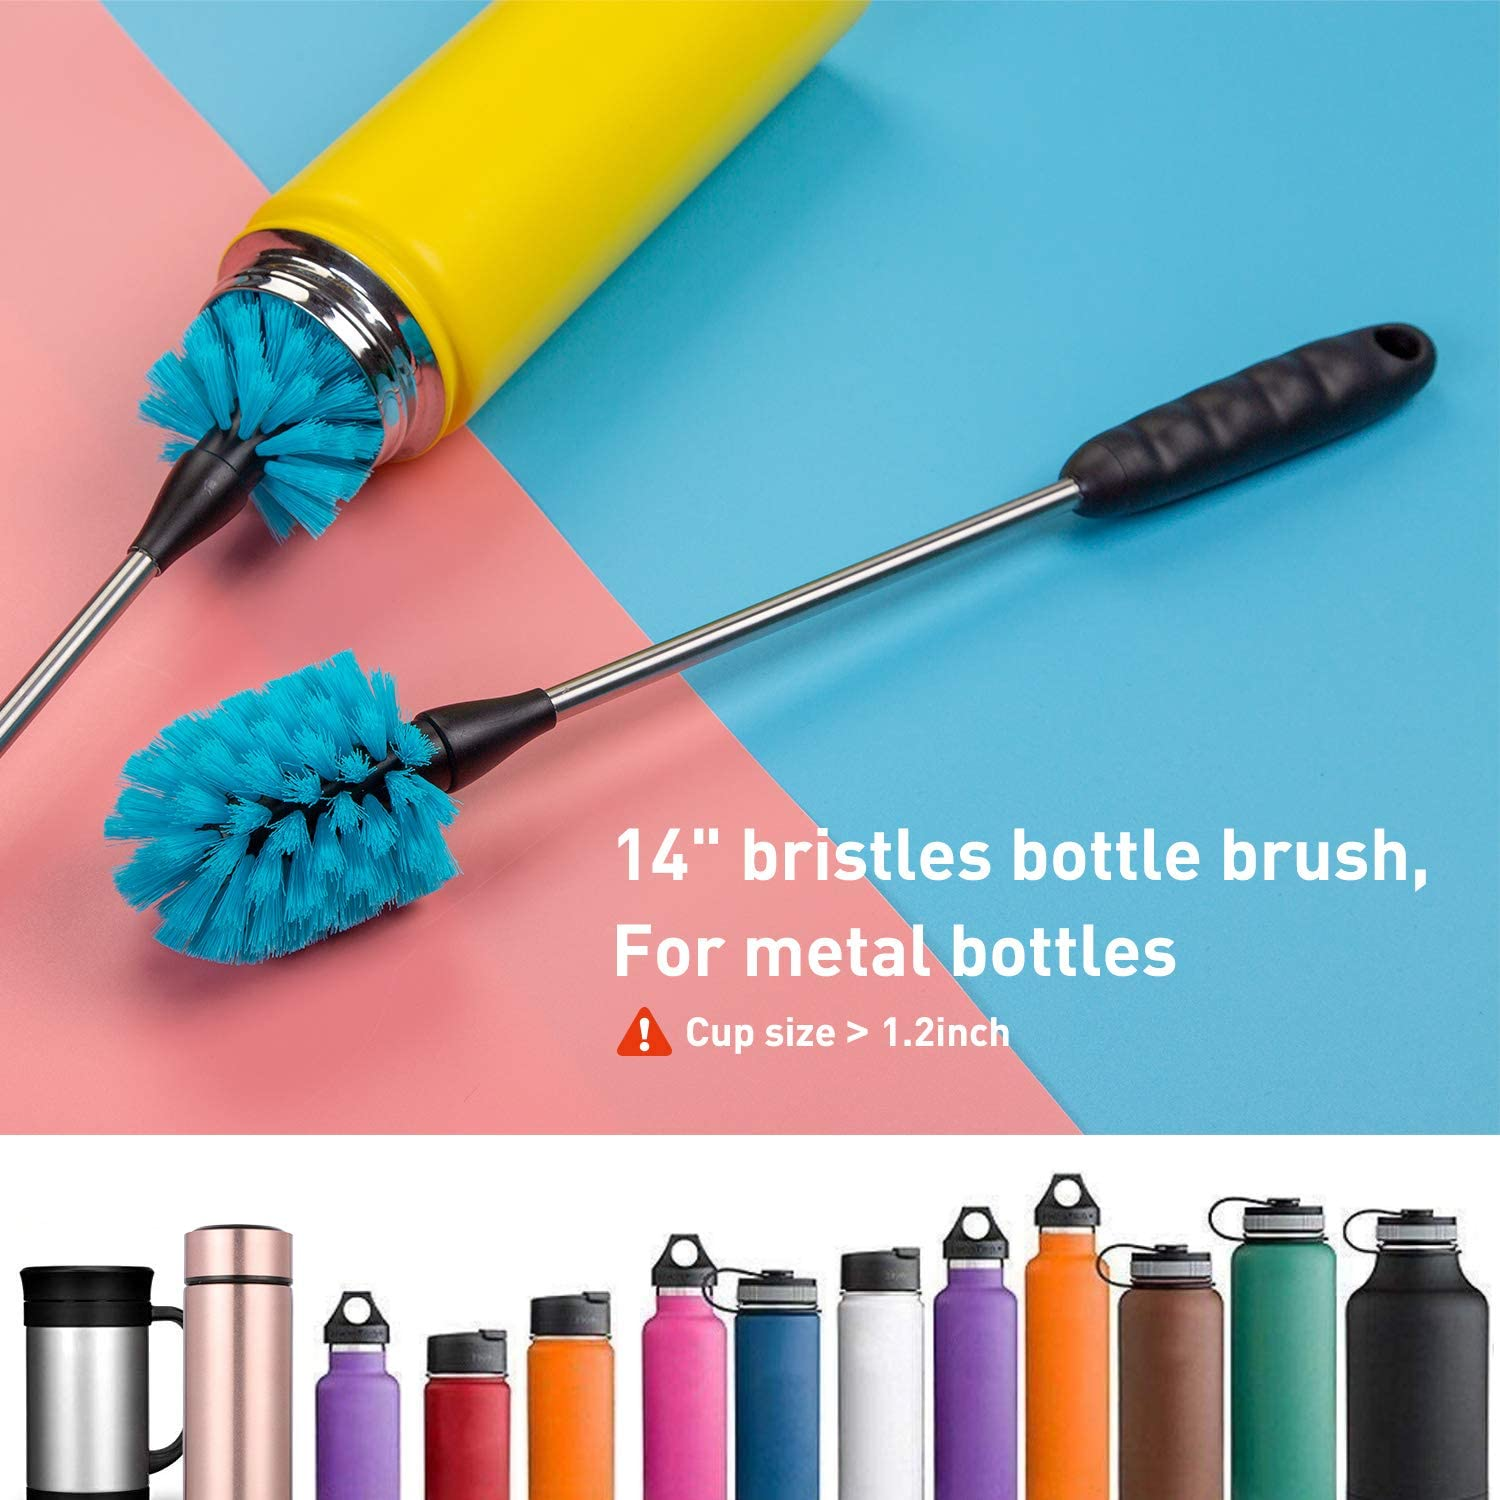 Holikme 5 Pack Bottle Brush Cleaning Set,Long Handle Bottle Cleaner for Washing Narrow Neck Beer Bottles, Wine Decanter, Narrow Cup,Pipes, Hydro Flask Tumbler, Sinks, Cup Cover,White : Health & Household